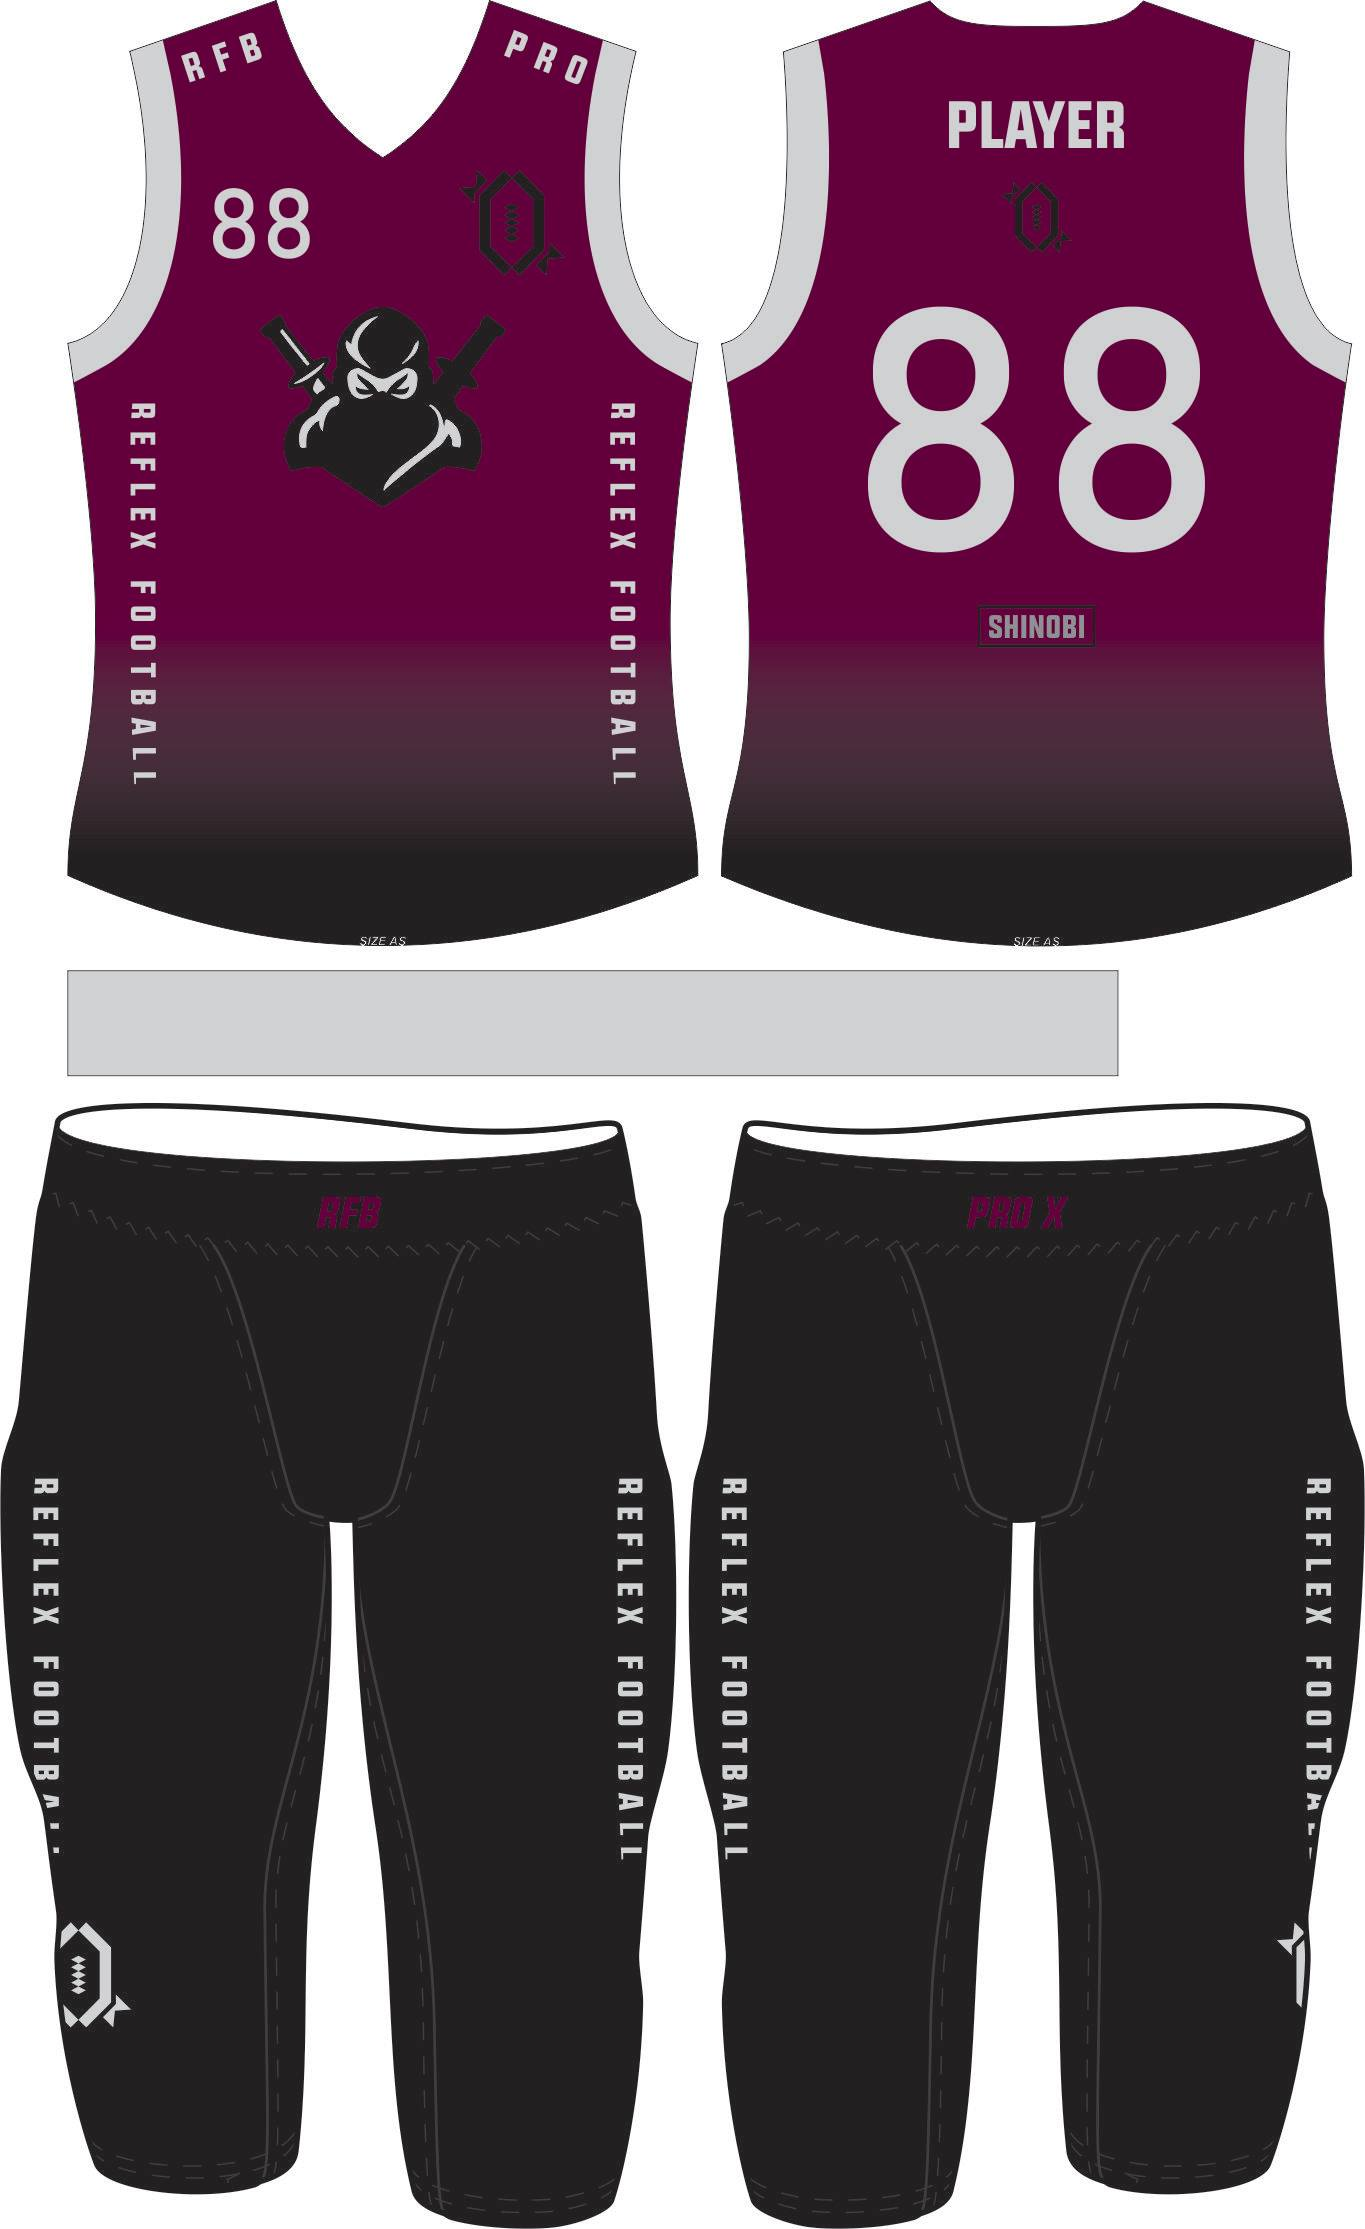 Shinobi Compression Flag Football Set